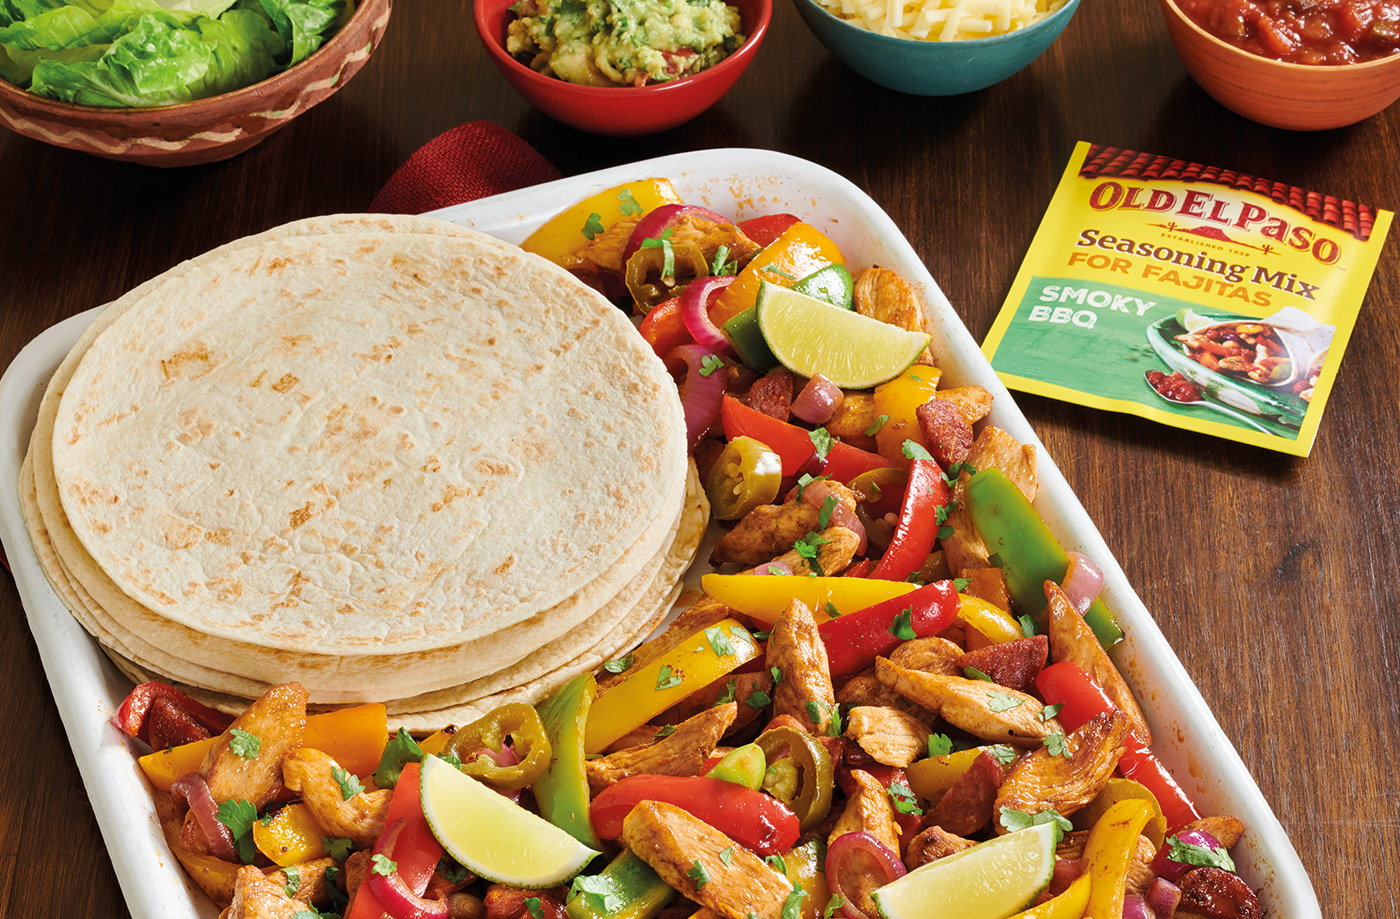 Kate's 'Friday fiesta' fajita bake recipe